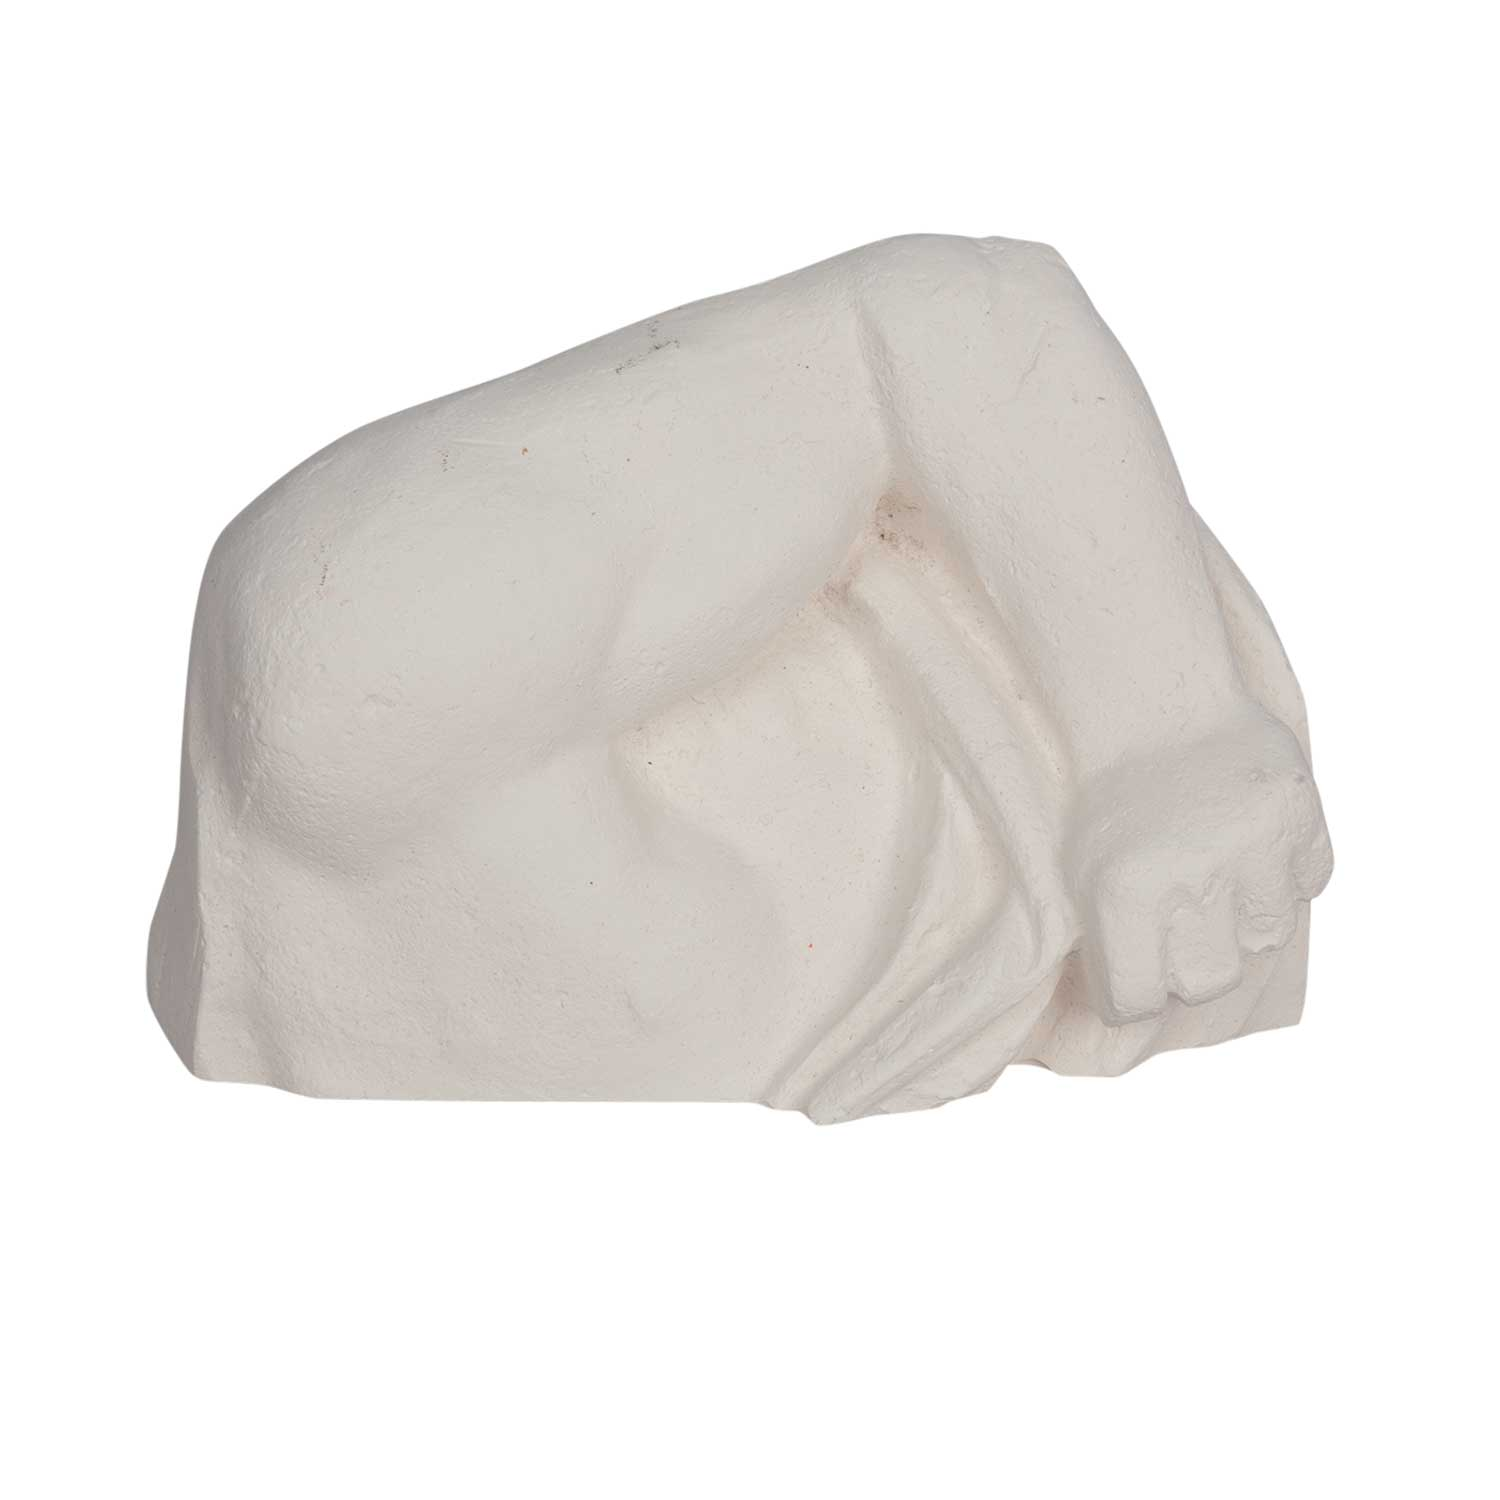 Plaster cast body part - Large